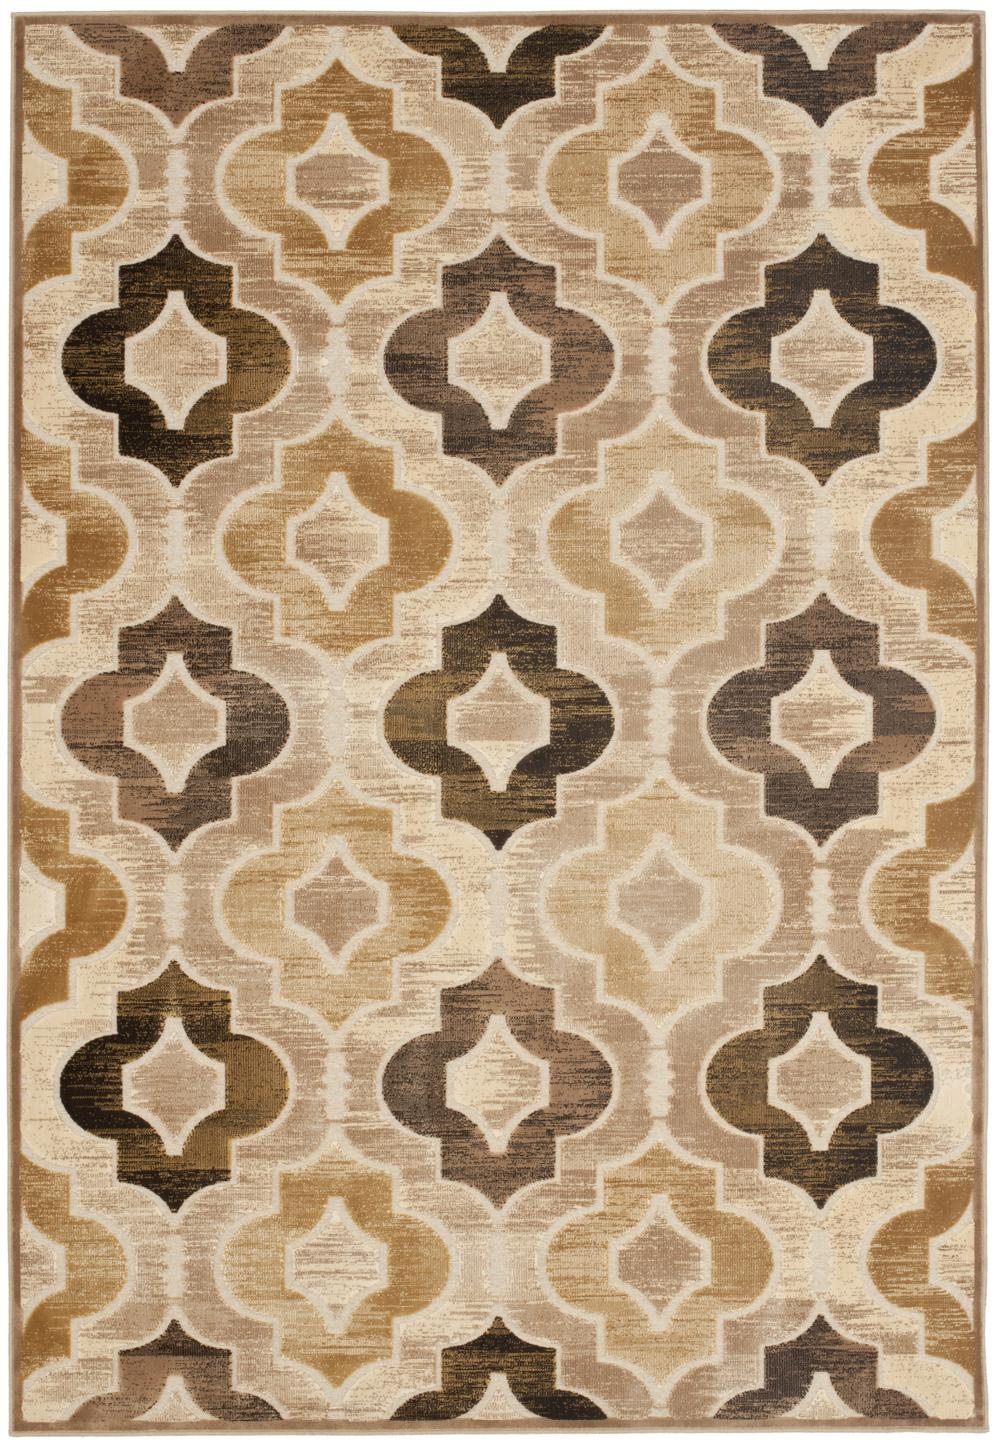 Safavieh paradise par165 604 taupe and multi area rug for Area 604